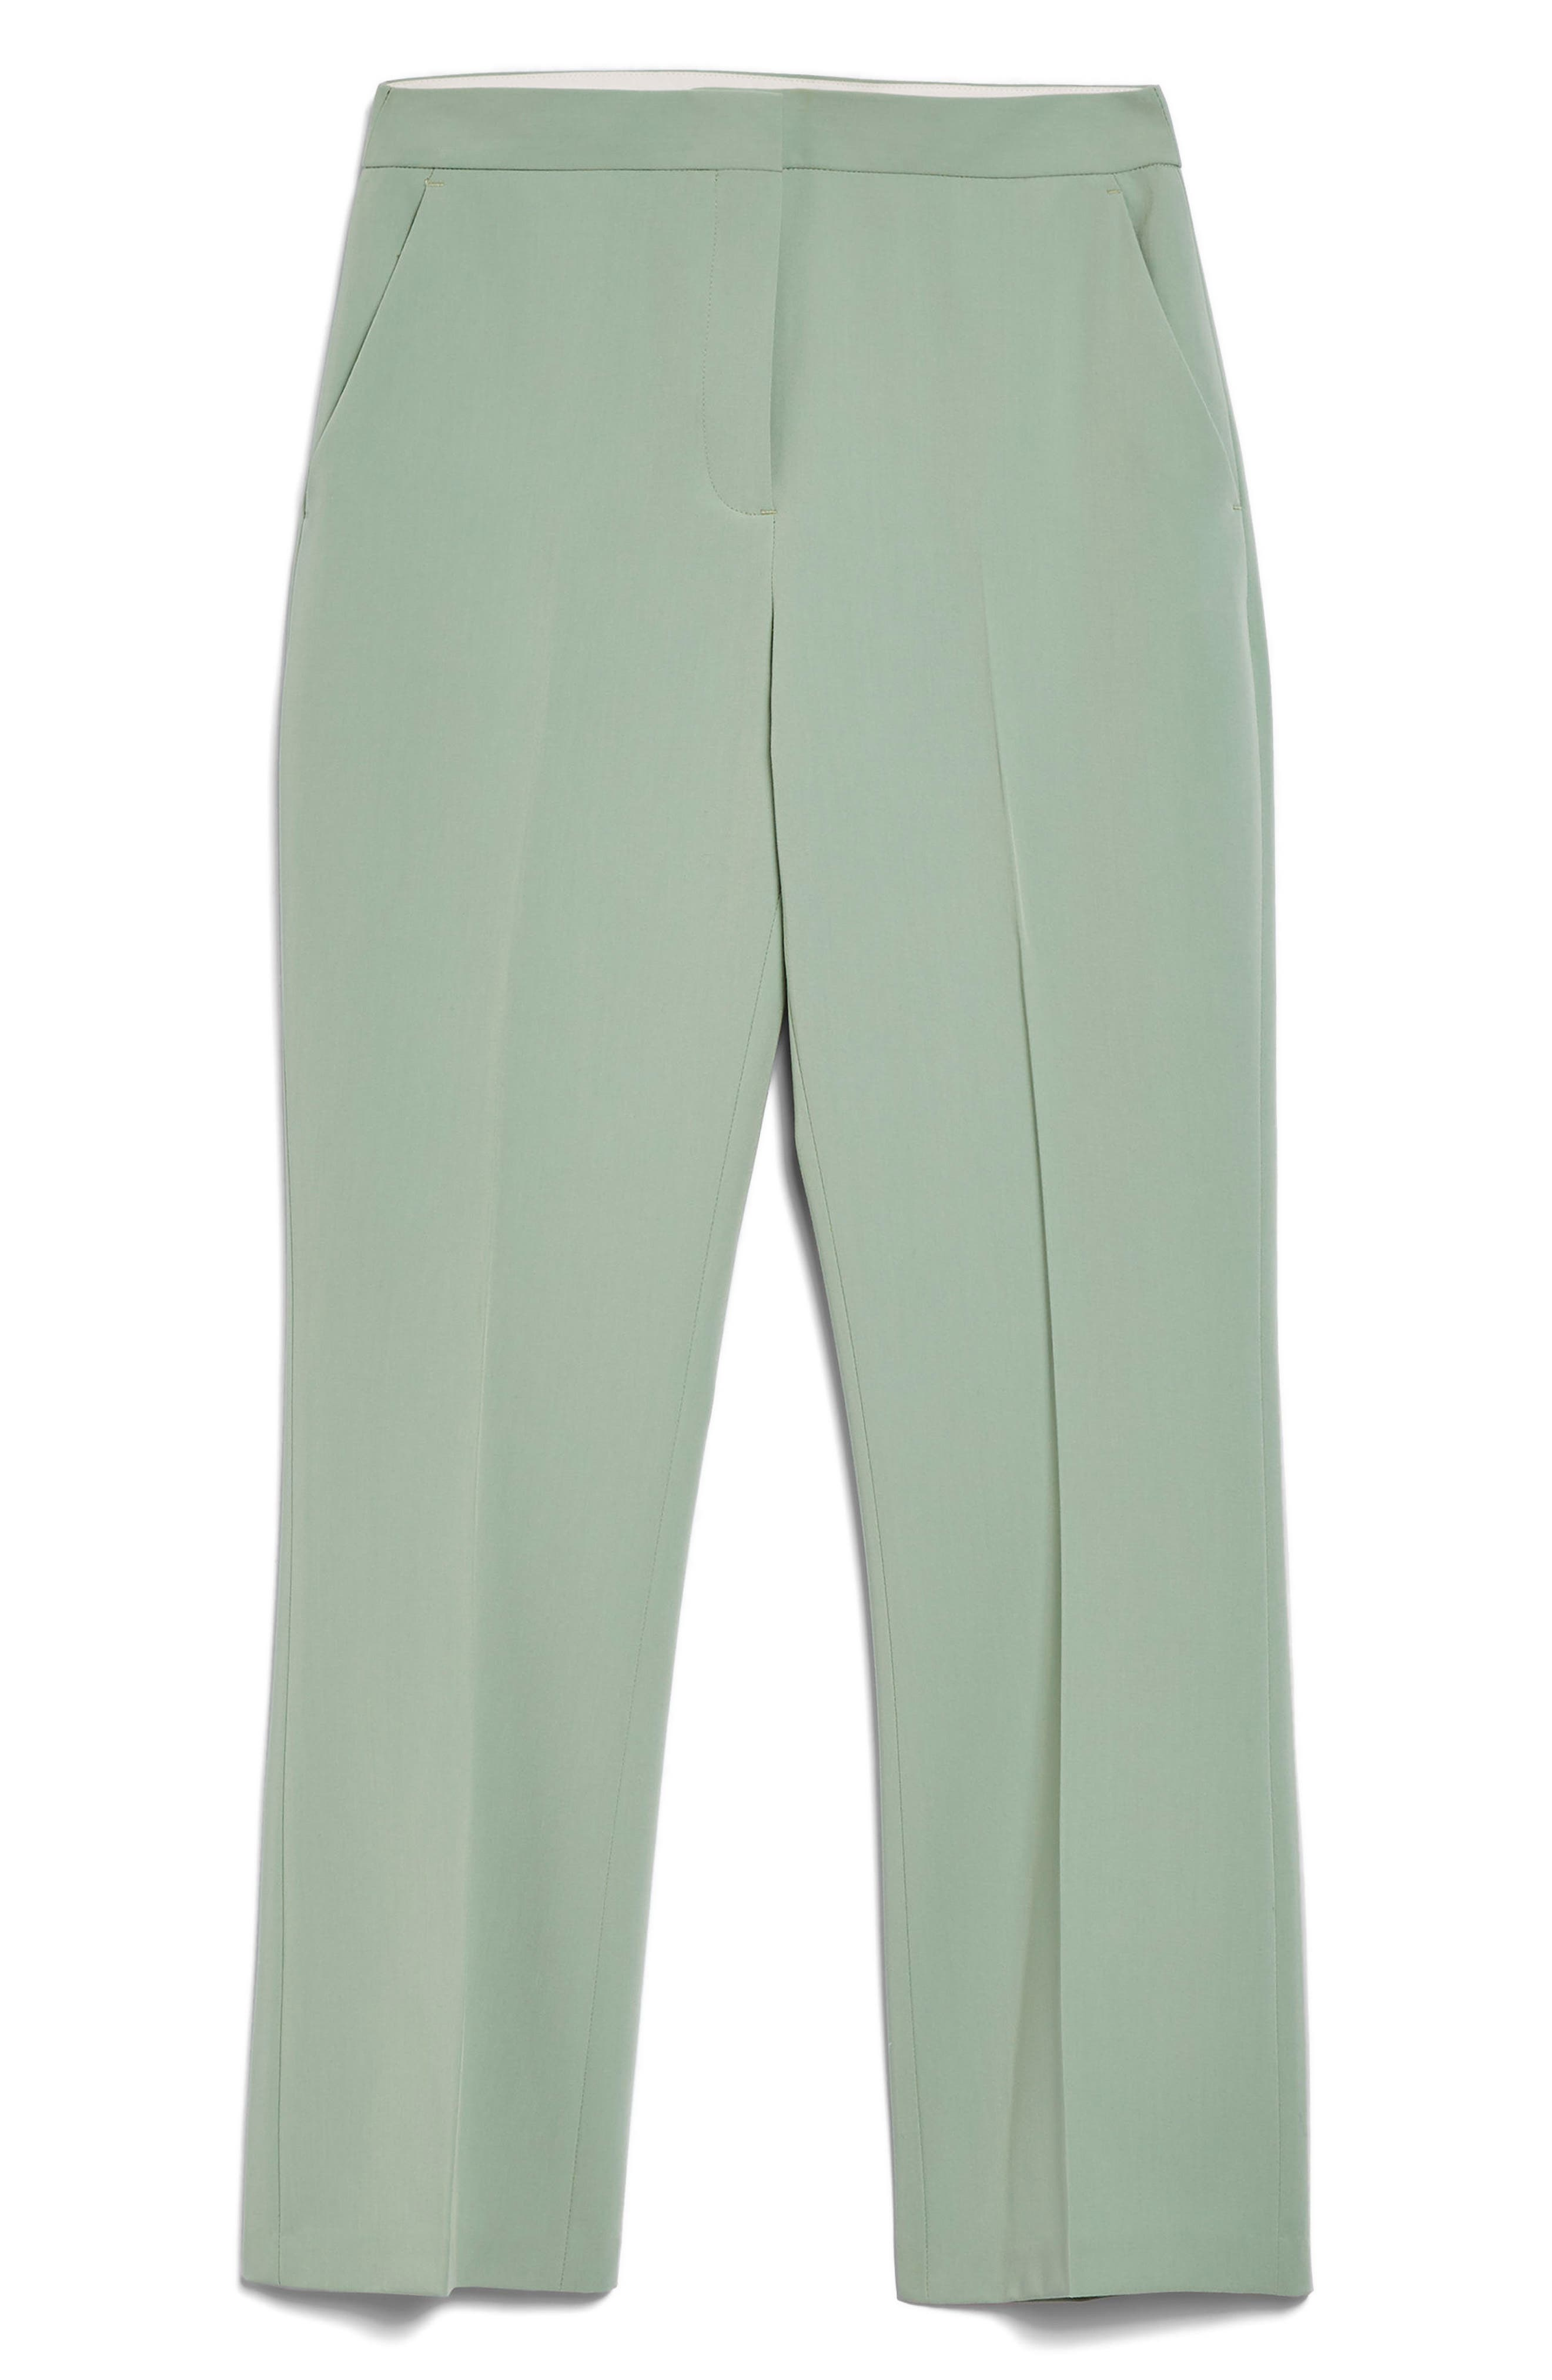 Cropped Suit Trousers,                             Alternate thumbnail 3, color,                             330